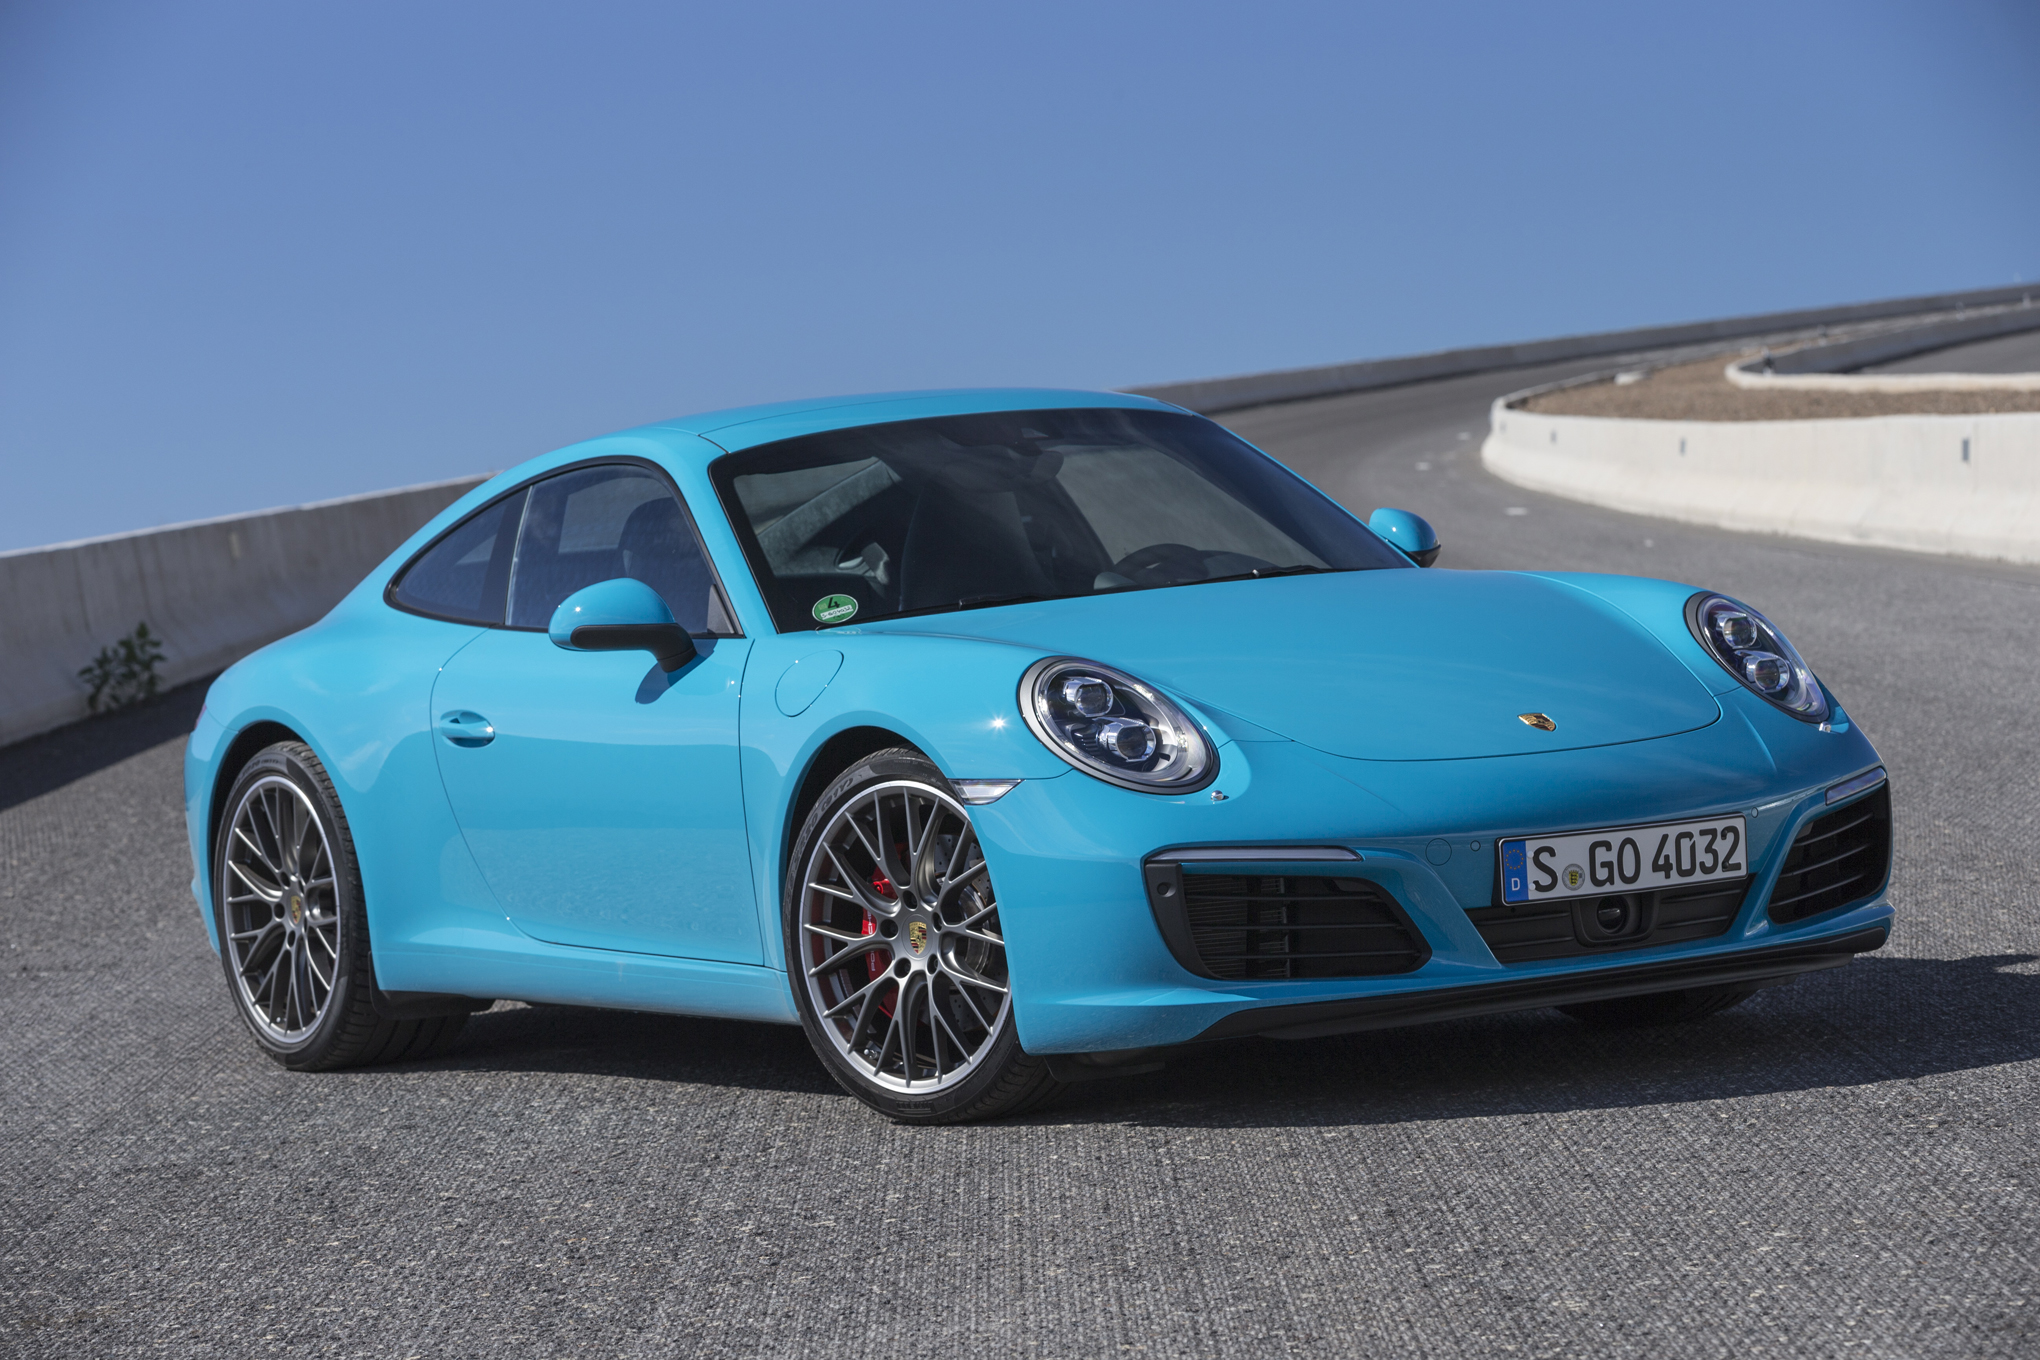 2019 Porsche 911 Carrera 4S photo - 6